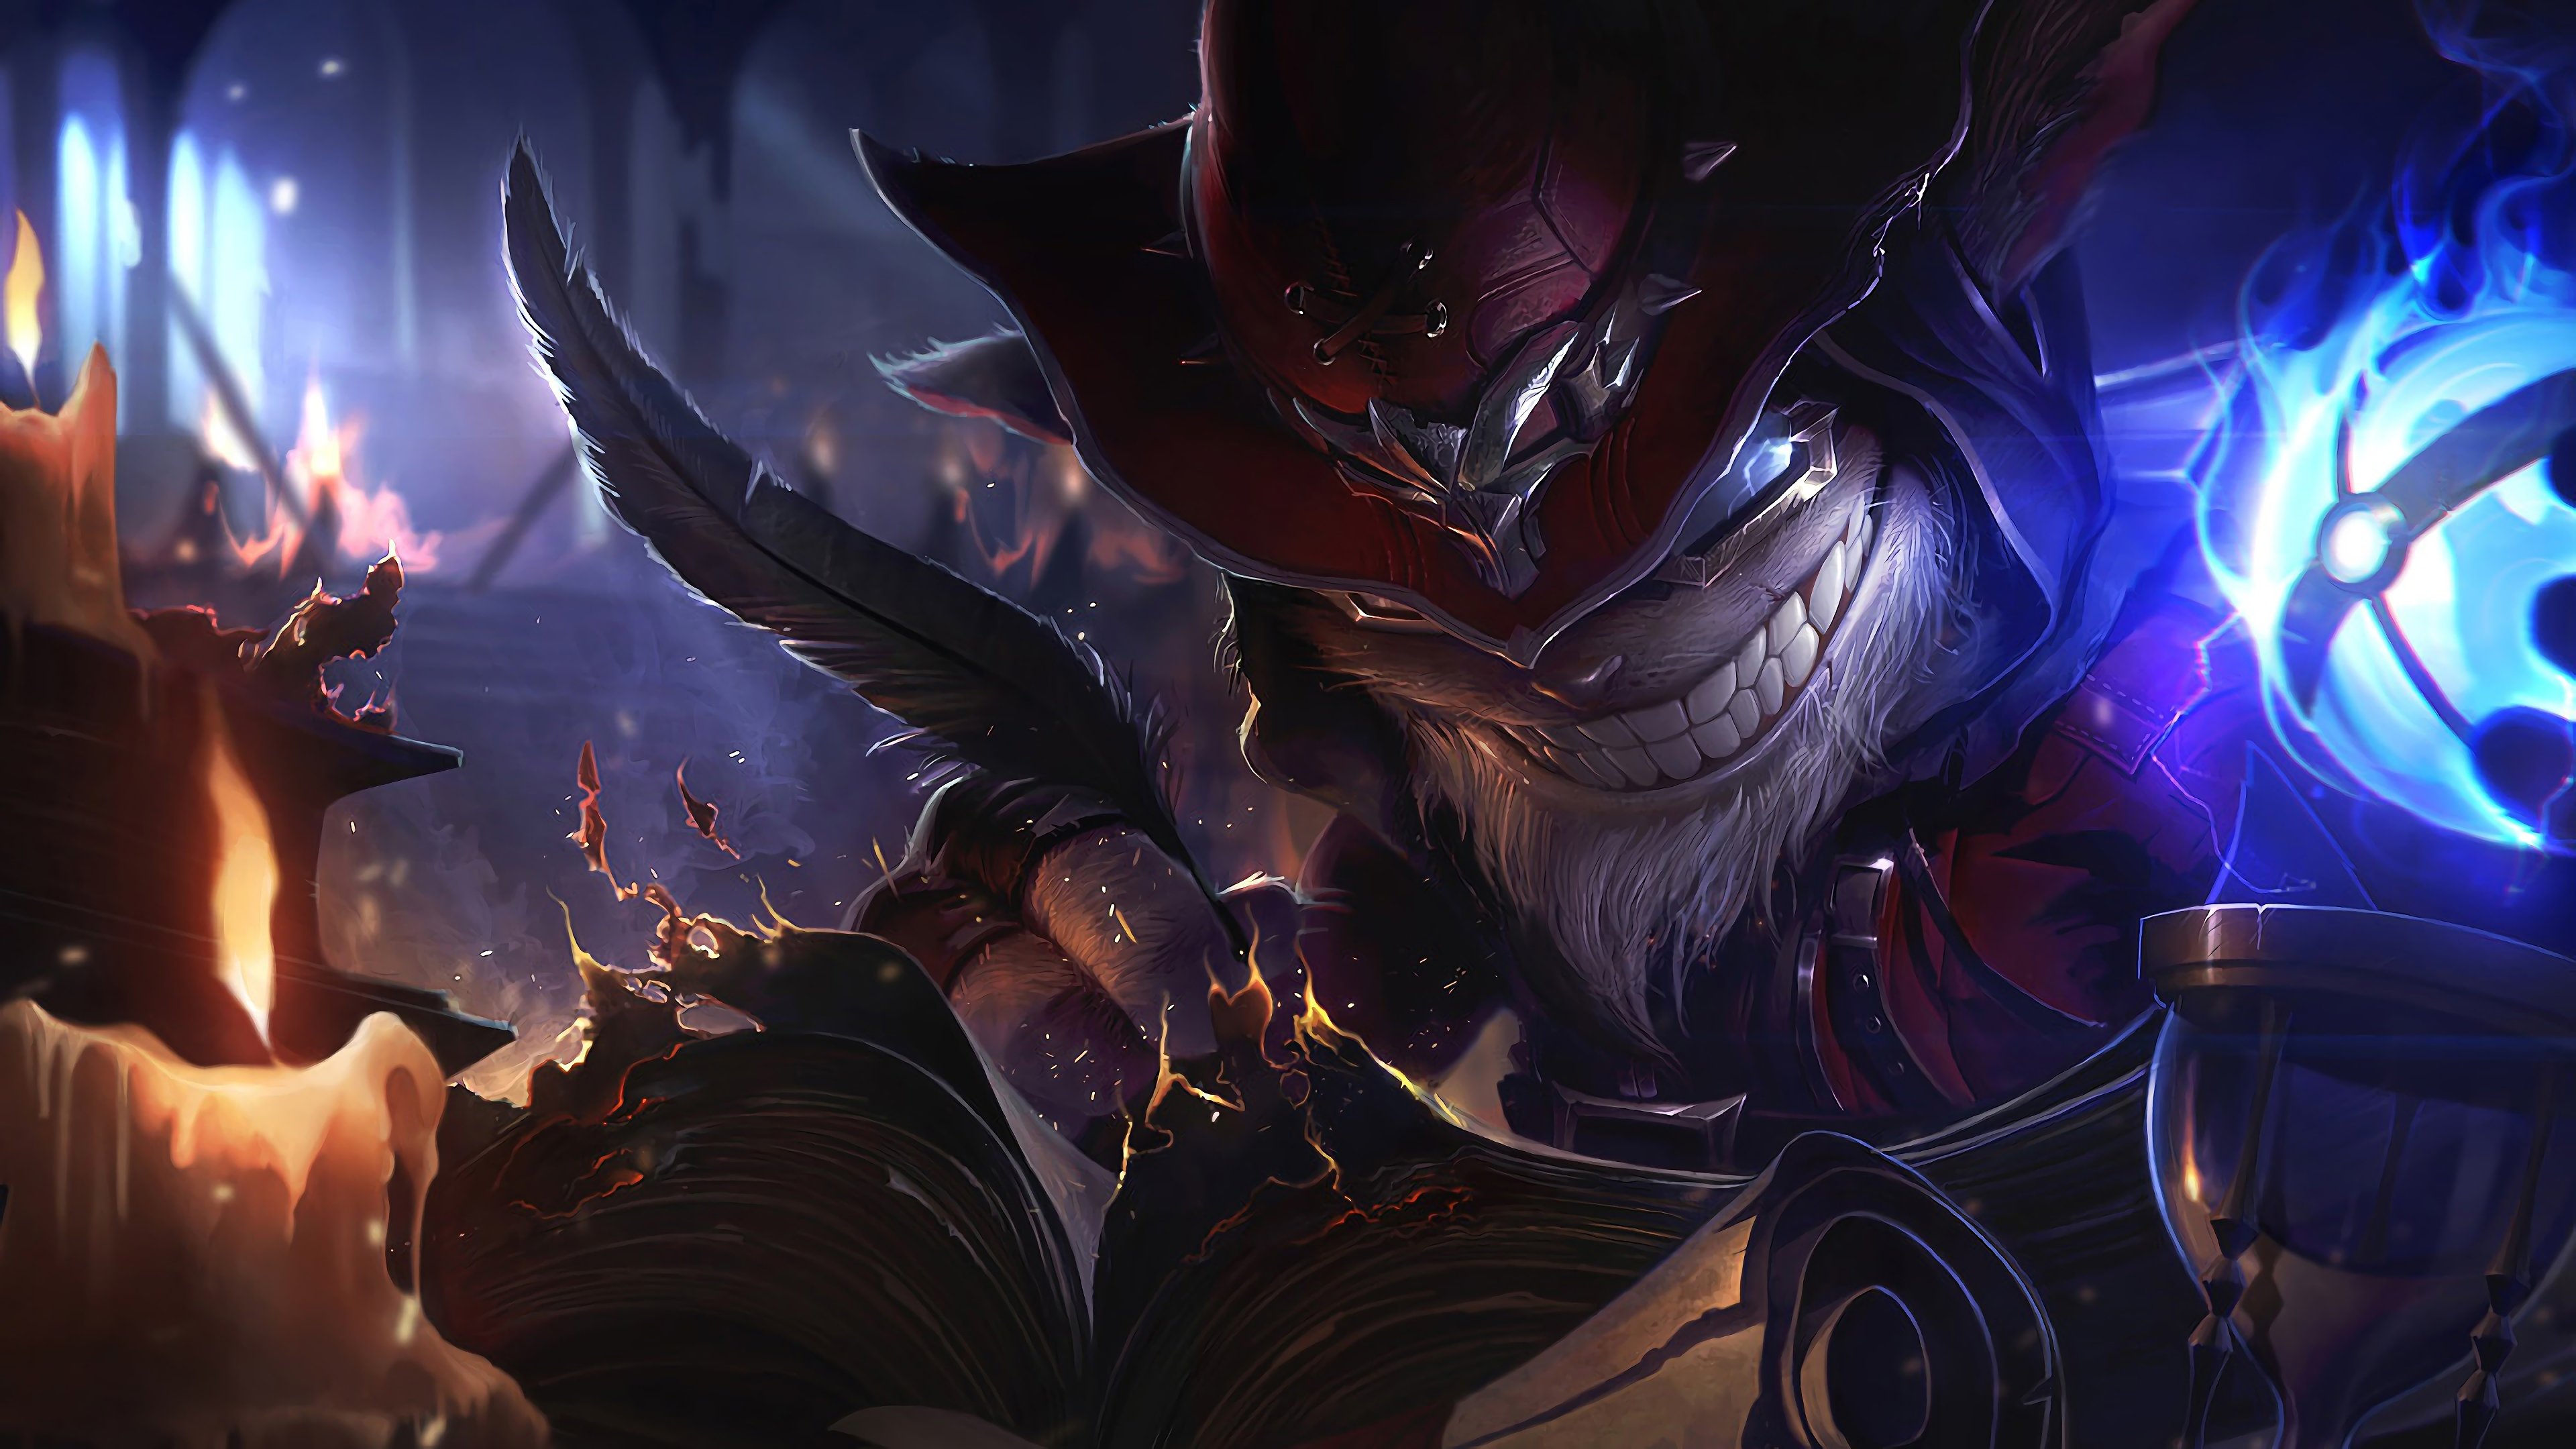 master arcanist ziggs lol splash art league of legends 1574099224 - Master Arcanist Ziggs LoL Splash Art League of Legends - Ziggs, league of legends